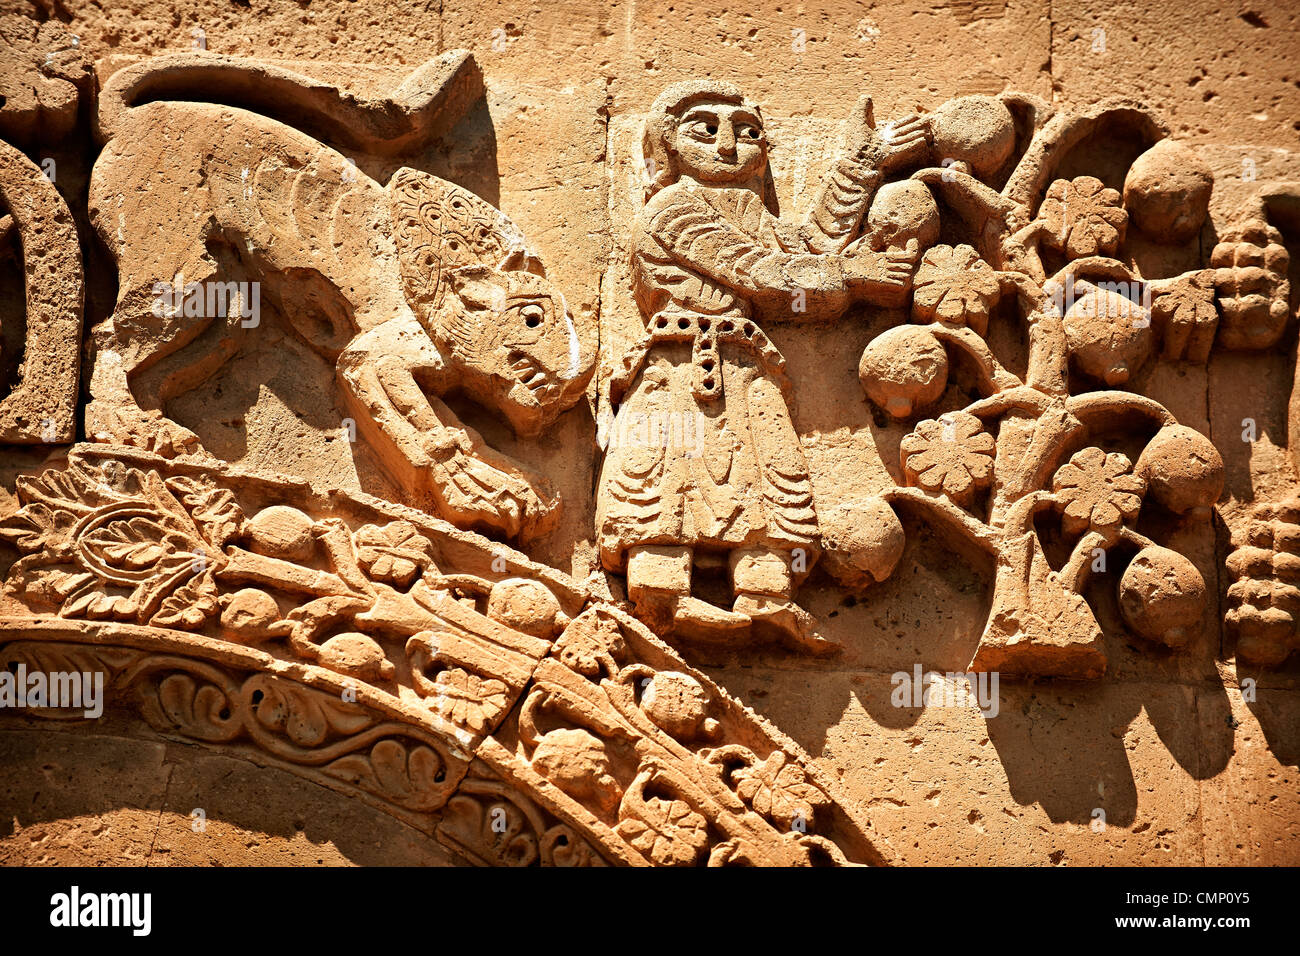 Armenian religious sculpture scenes from the Bible, Akdamar Cathedral of the Holy Cross, Lake Van Turkey - Stock Image